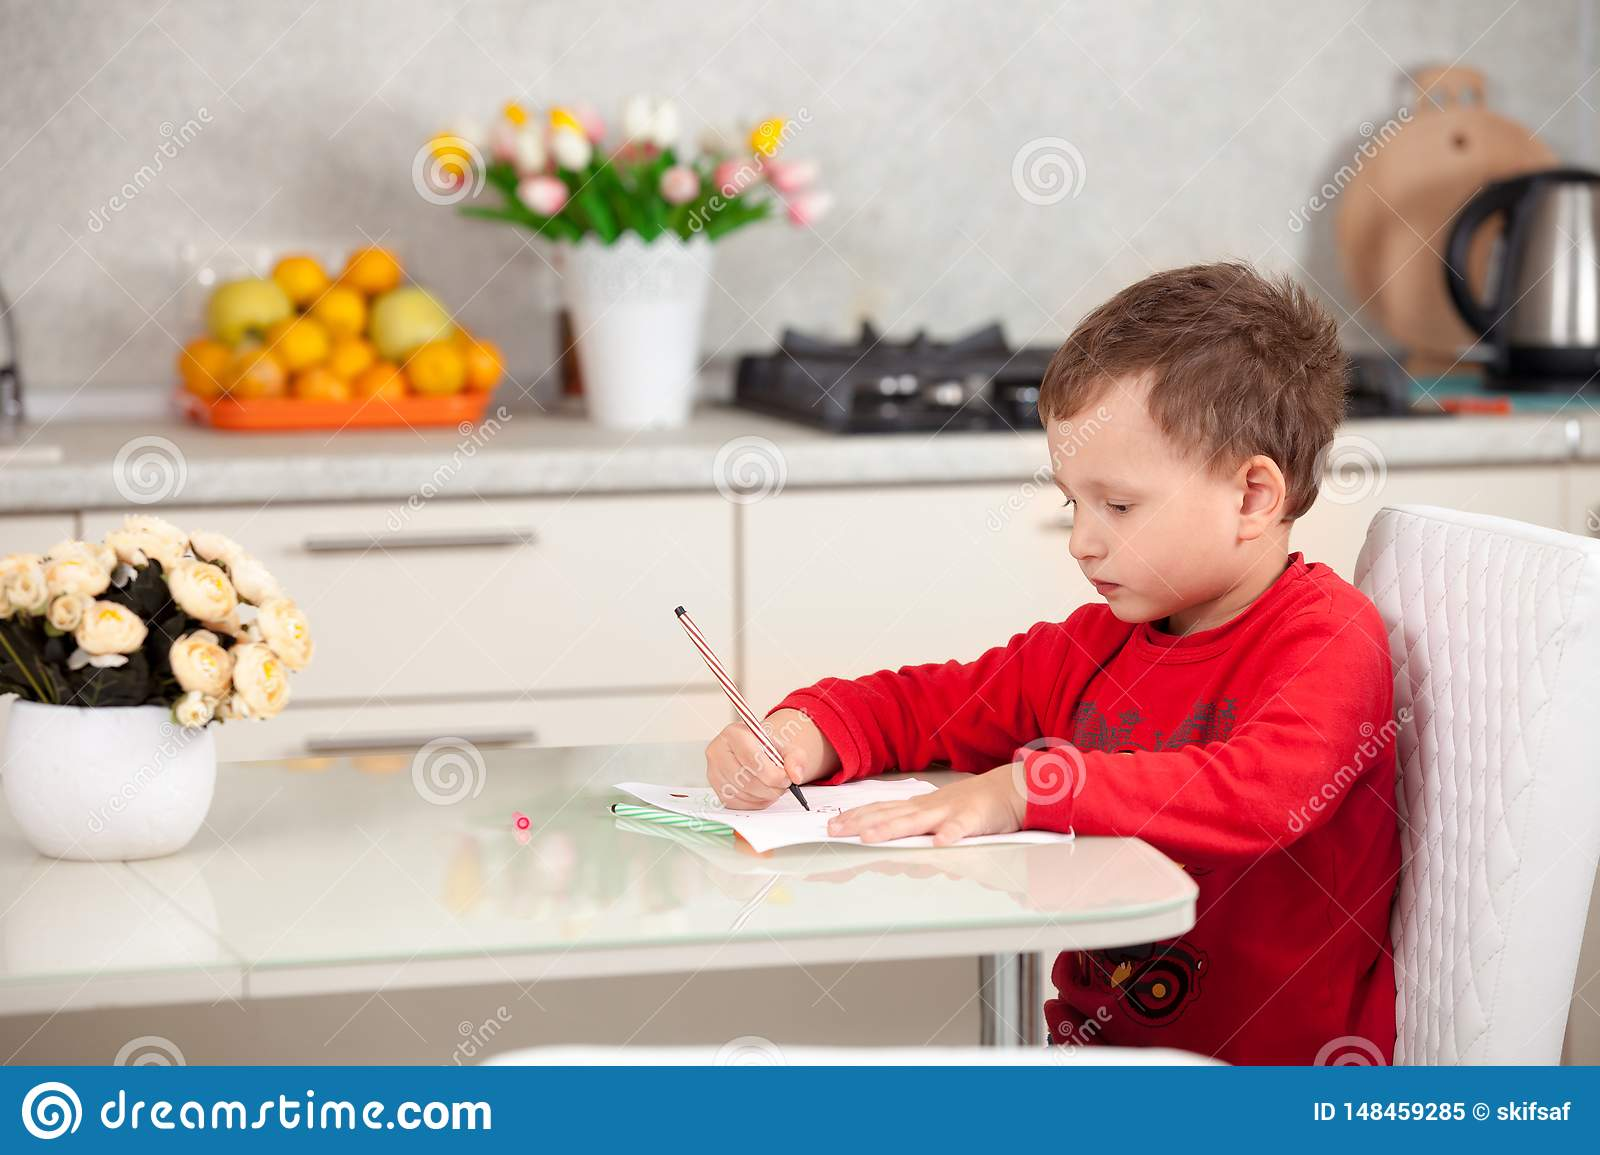 Inspired by the boy draws a picture on the paper at the table